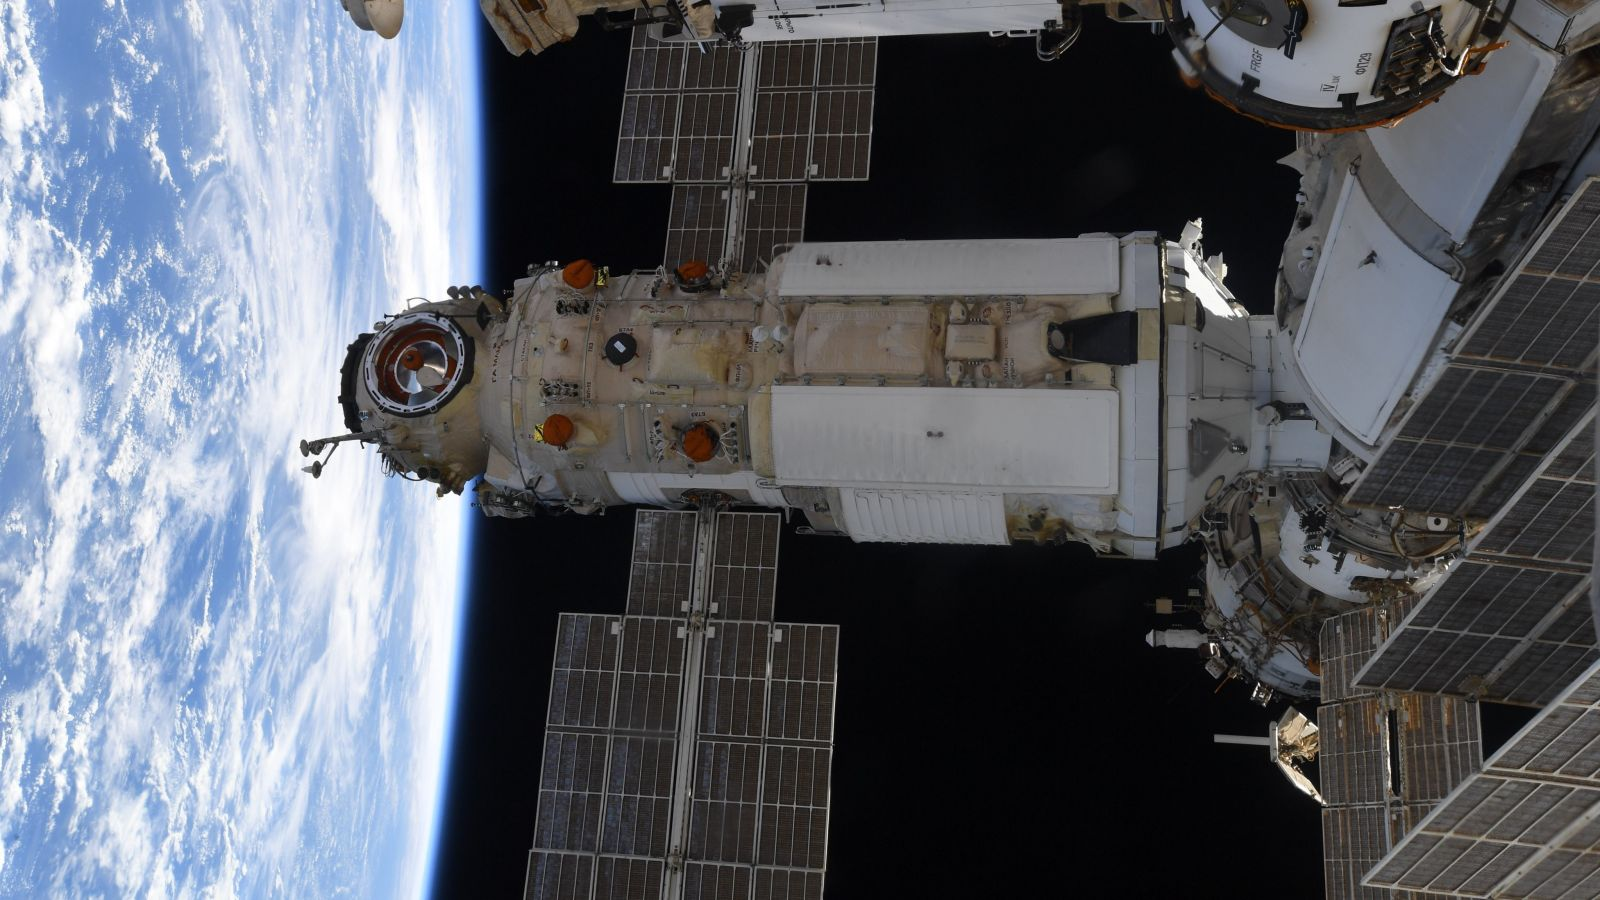 Nauka as seen from the Cupola module on the U.S. side of the ISS. Credit: NASA